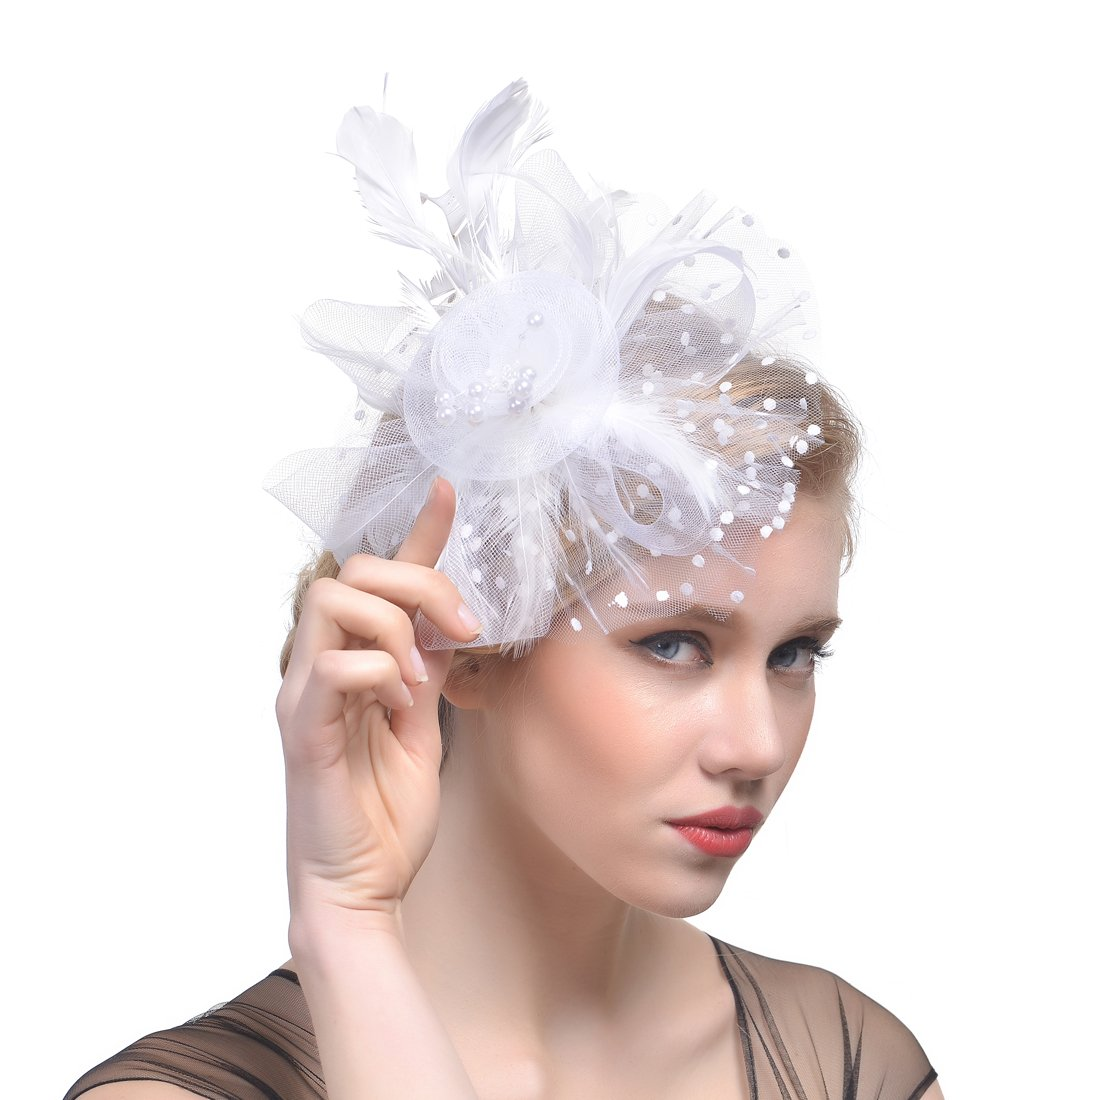 FeiYu Crafts Penny Mesh Hat Fascinator with Mesh Ribbons and Black Feathers FYC906